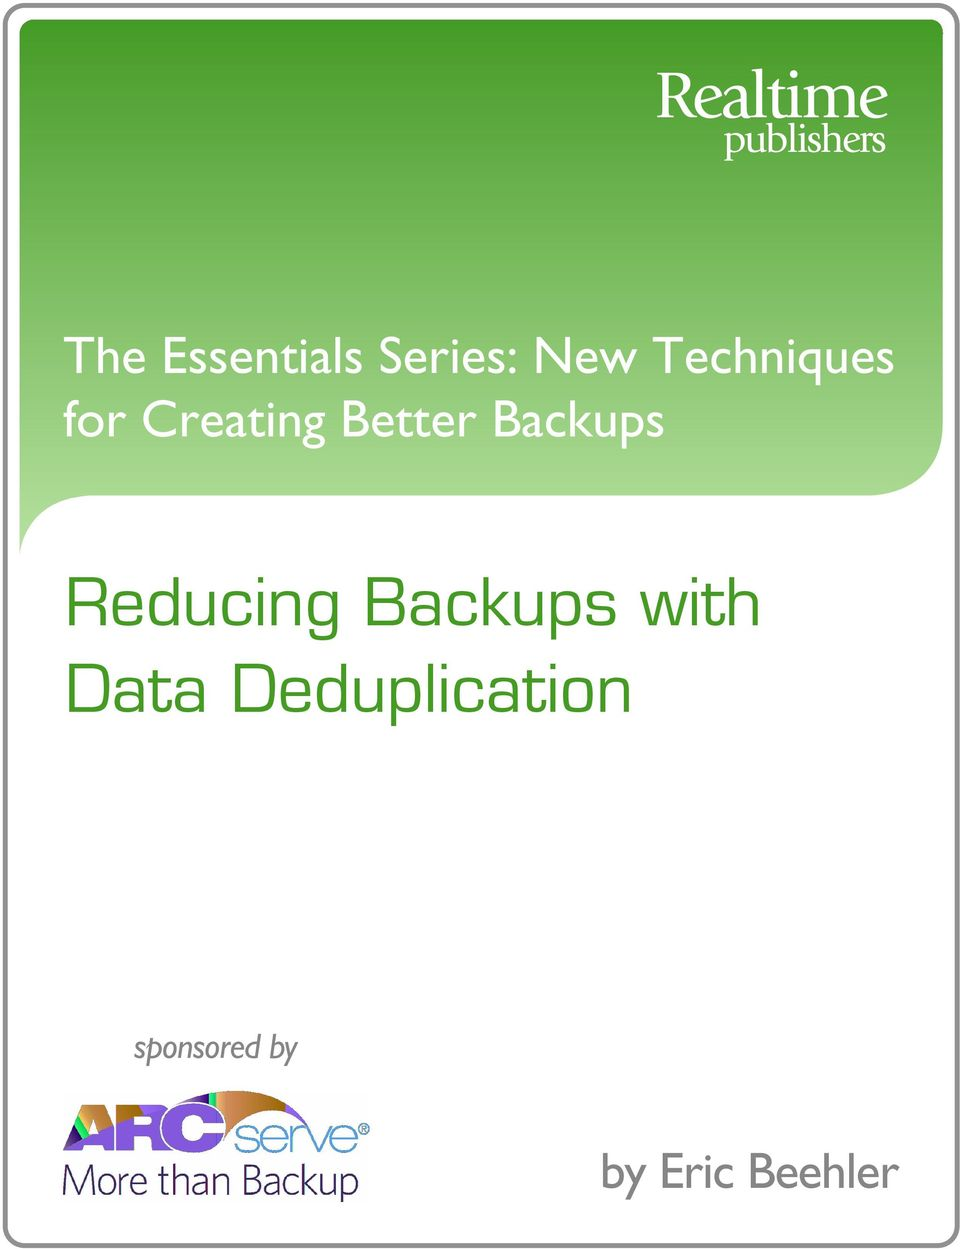 Backups Reducing Backups with